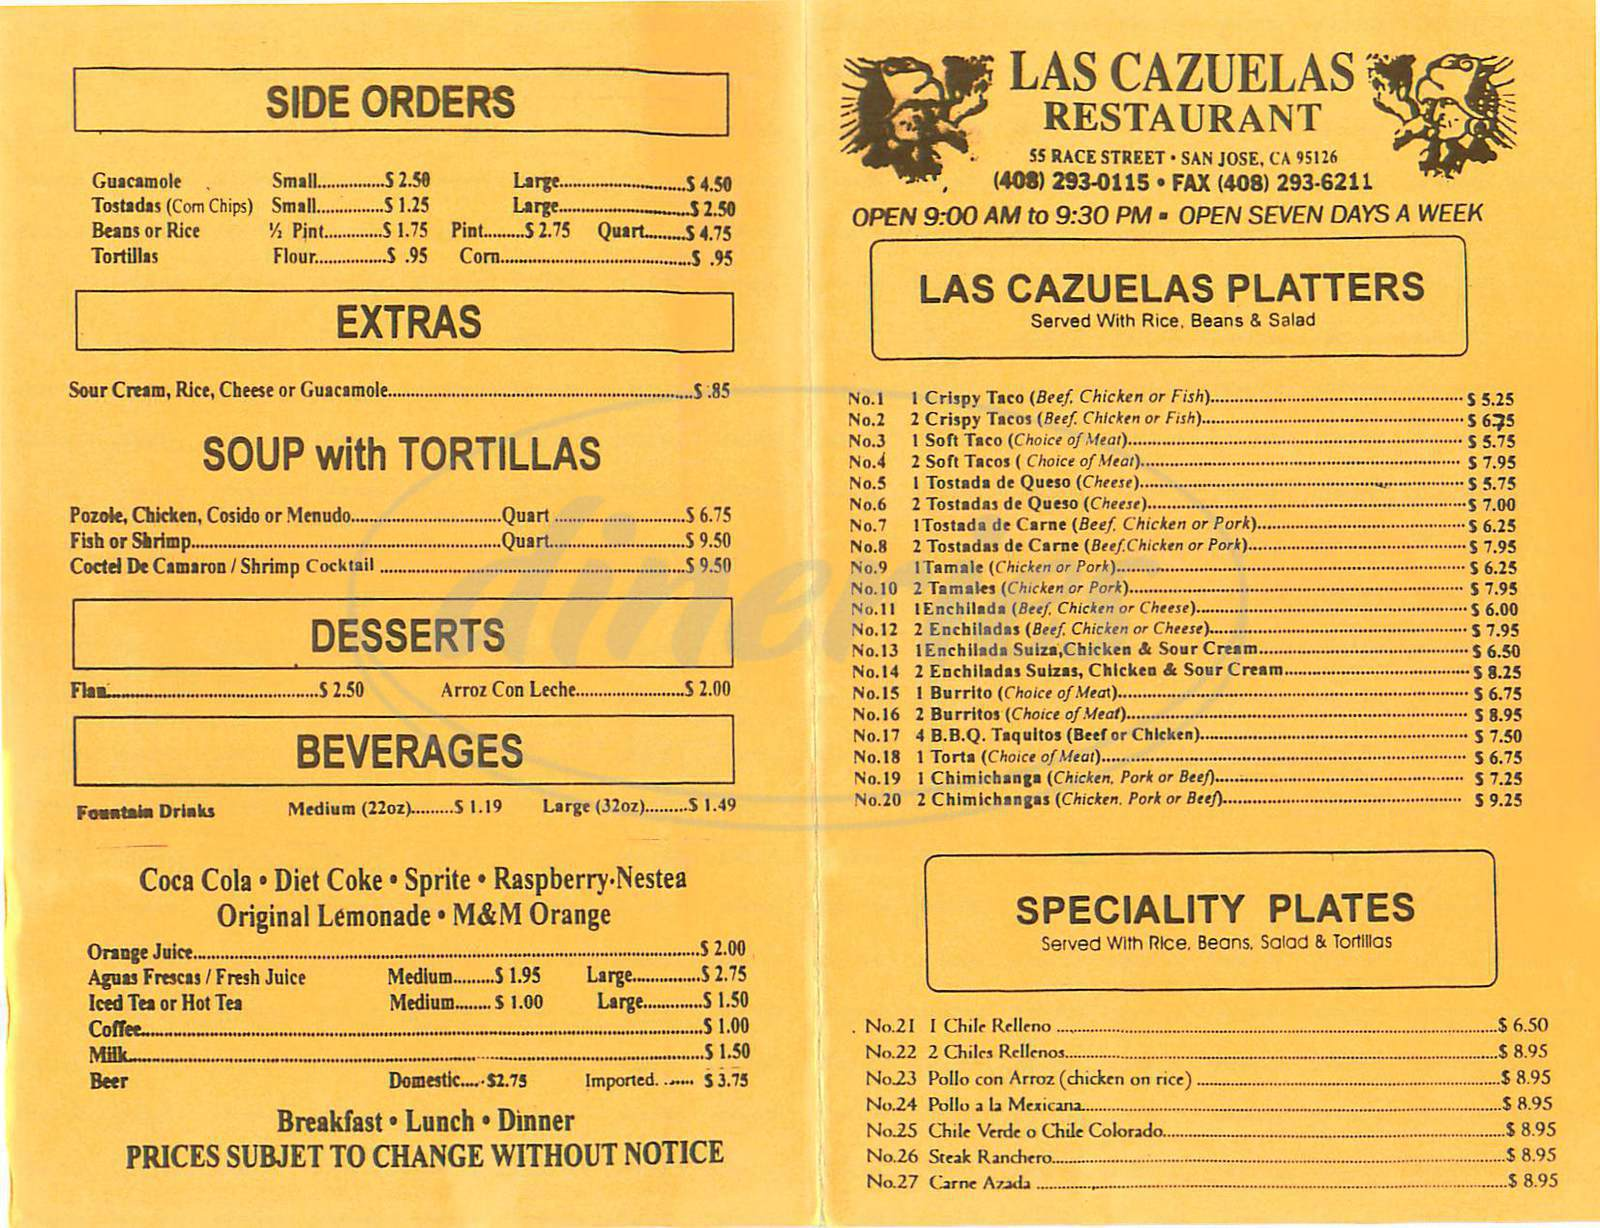 menu for Las Cazuelas Restaurant